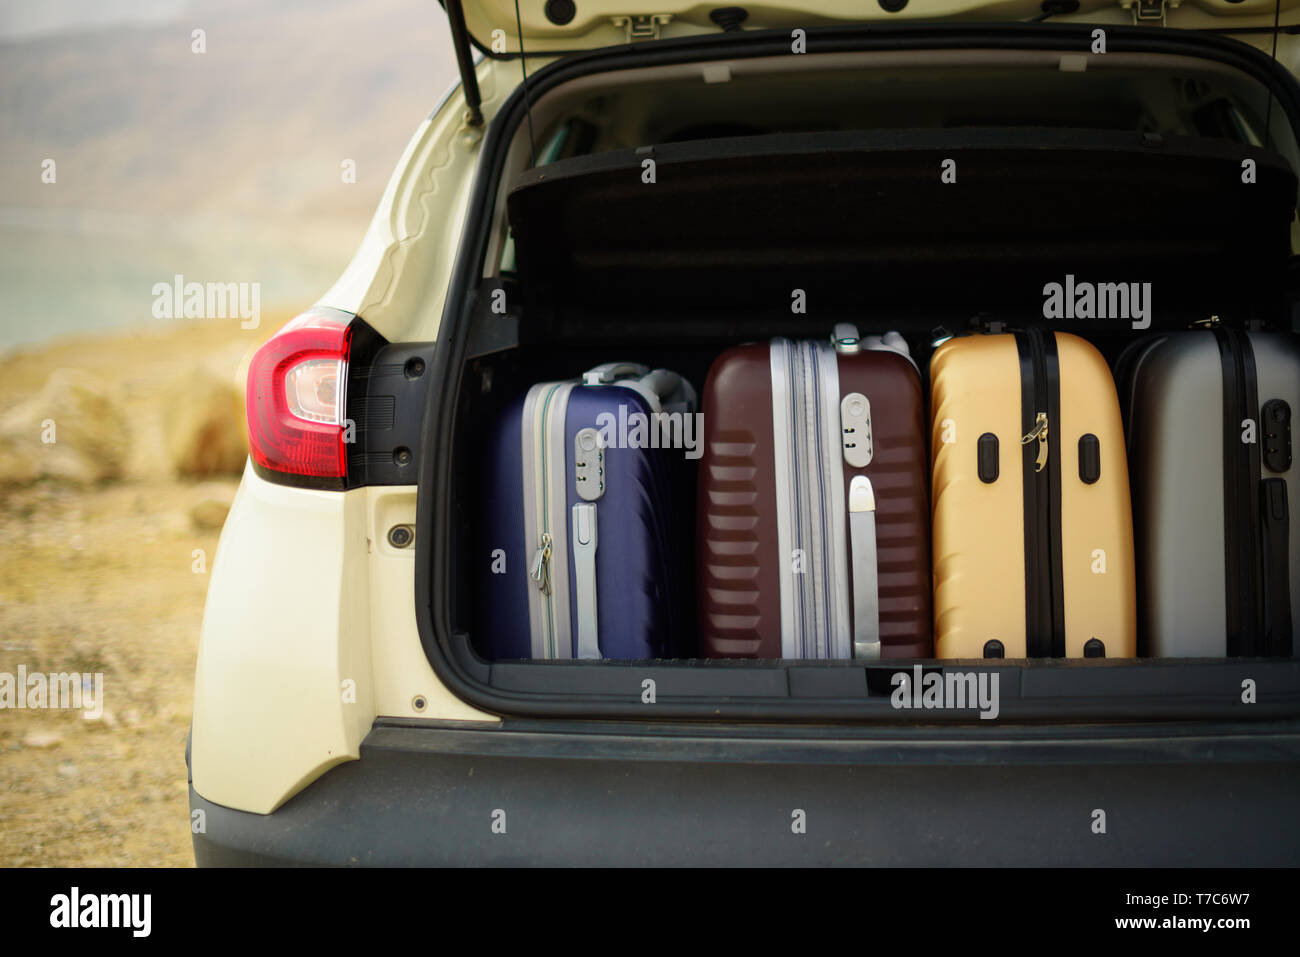 Opened car trunk full of suitcases, luggage, baggage. Summer holidays, travel, trip, adventure concept - Stock Image